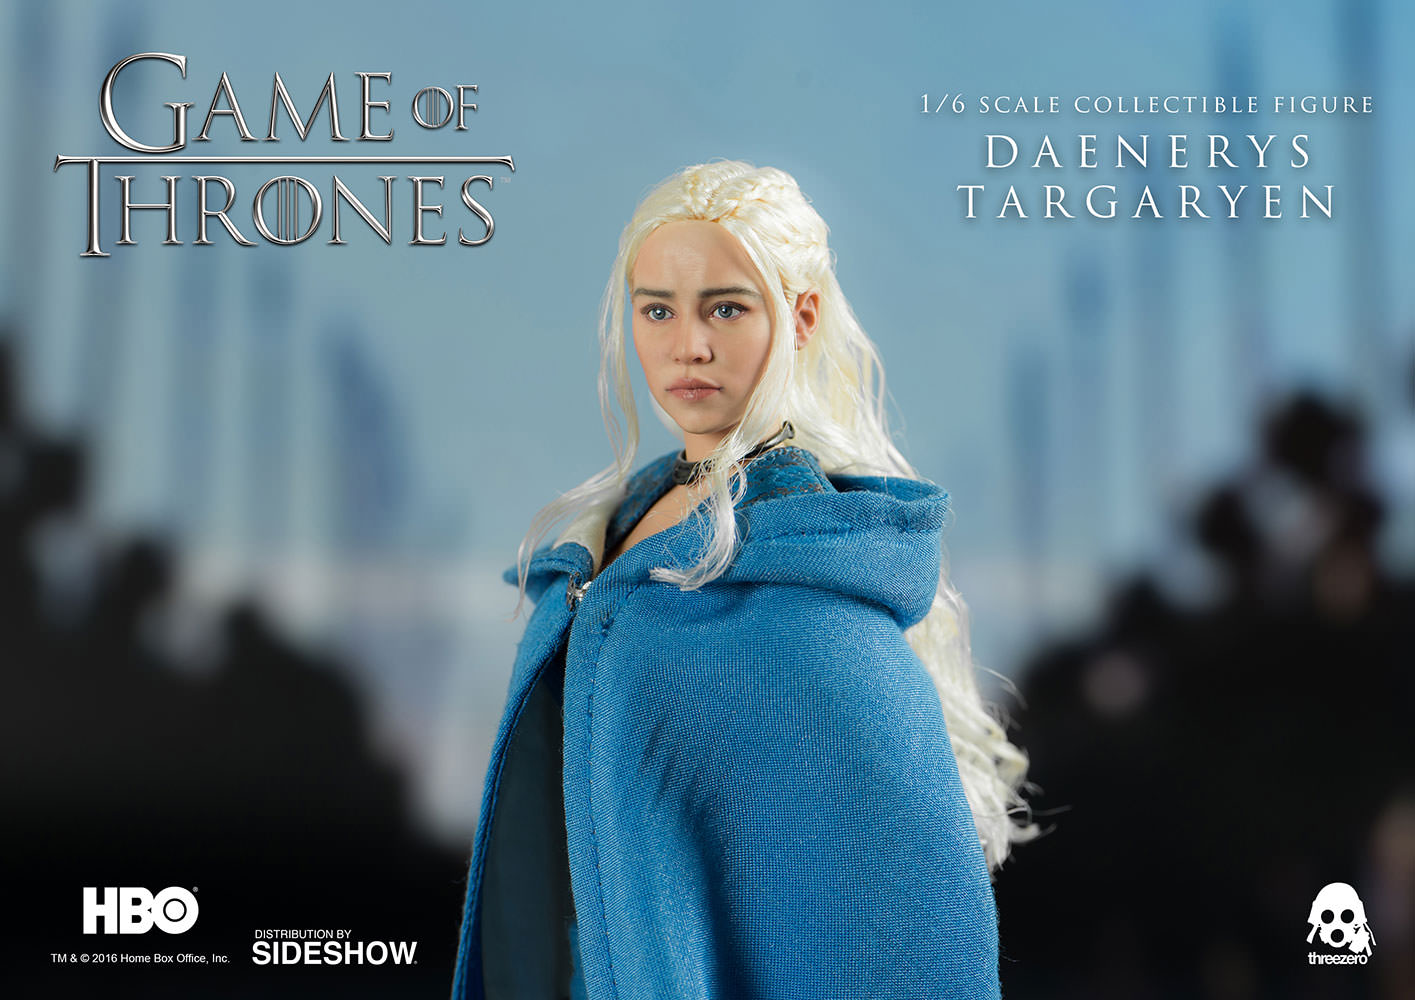 game-of-thrones-daenerys-targaryen-sixth-scale-figure-threezero-902928-14 Figurine - Game of Thrones - Daenerys